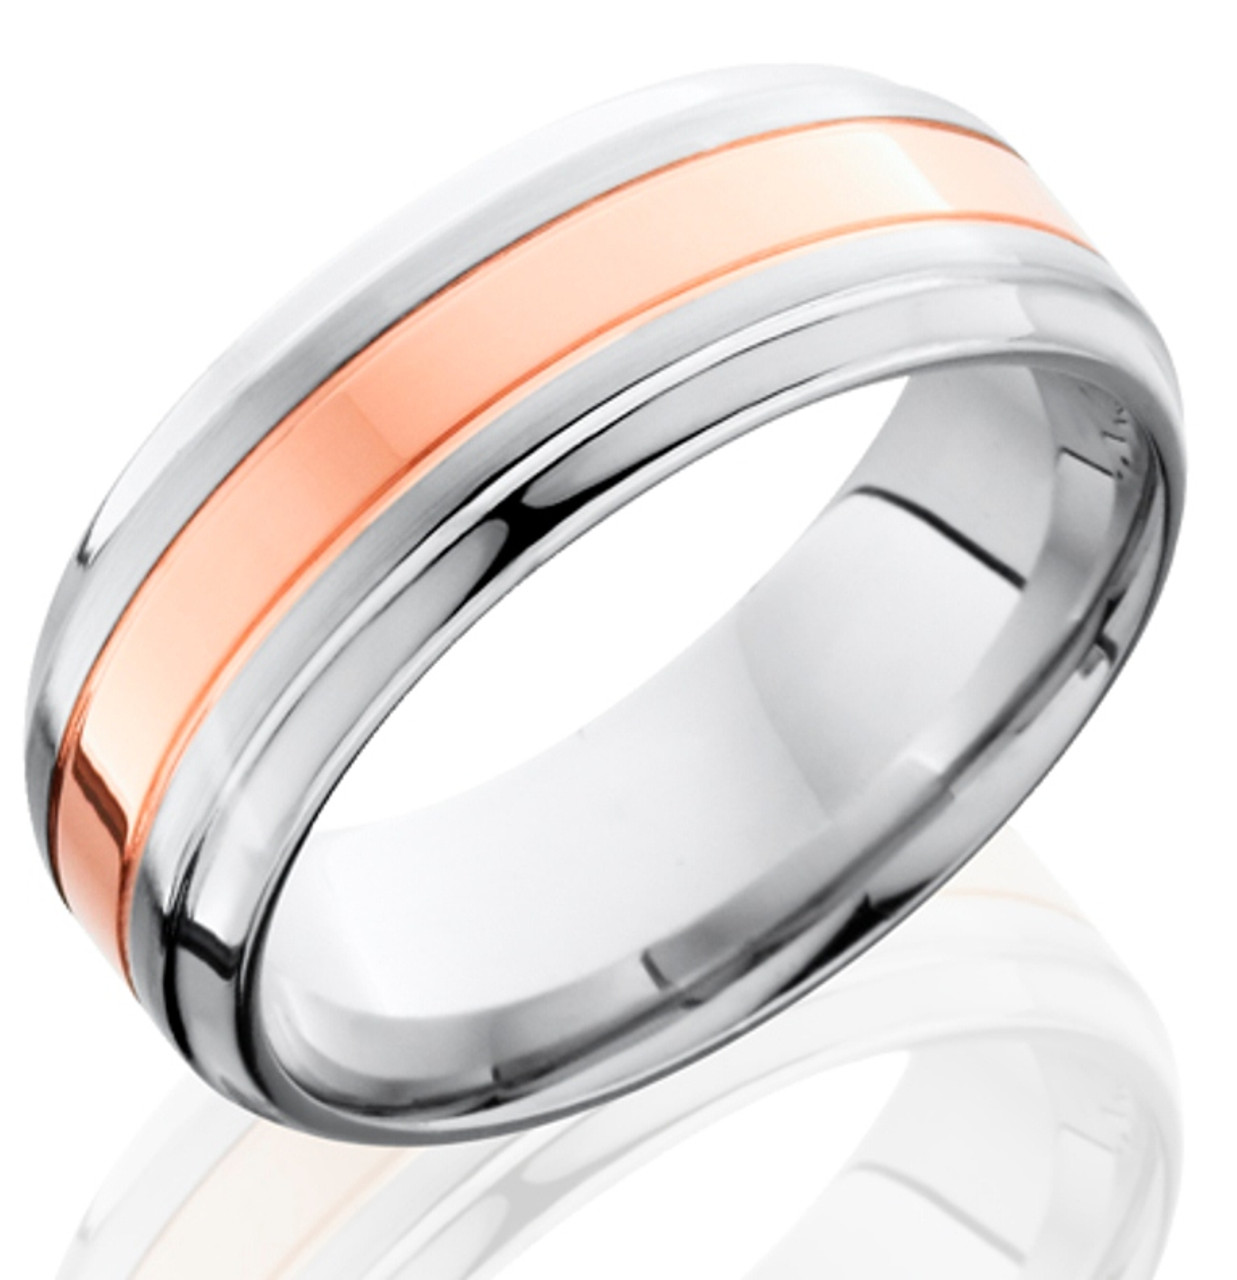 Gold Cobalt Wedding Ring Cobalt Wedding Bands for Men TitaniumBuzz